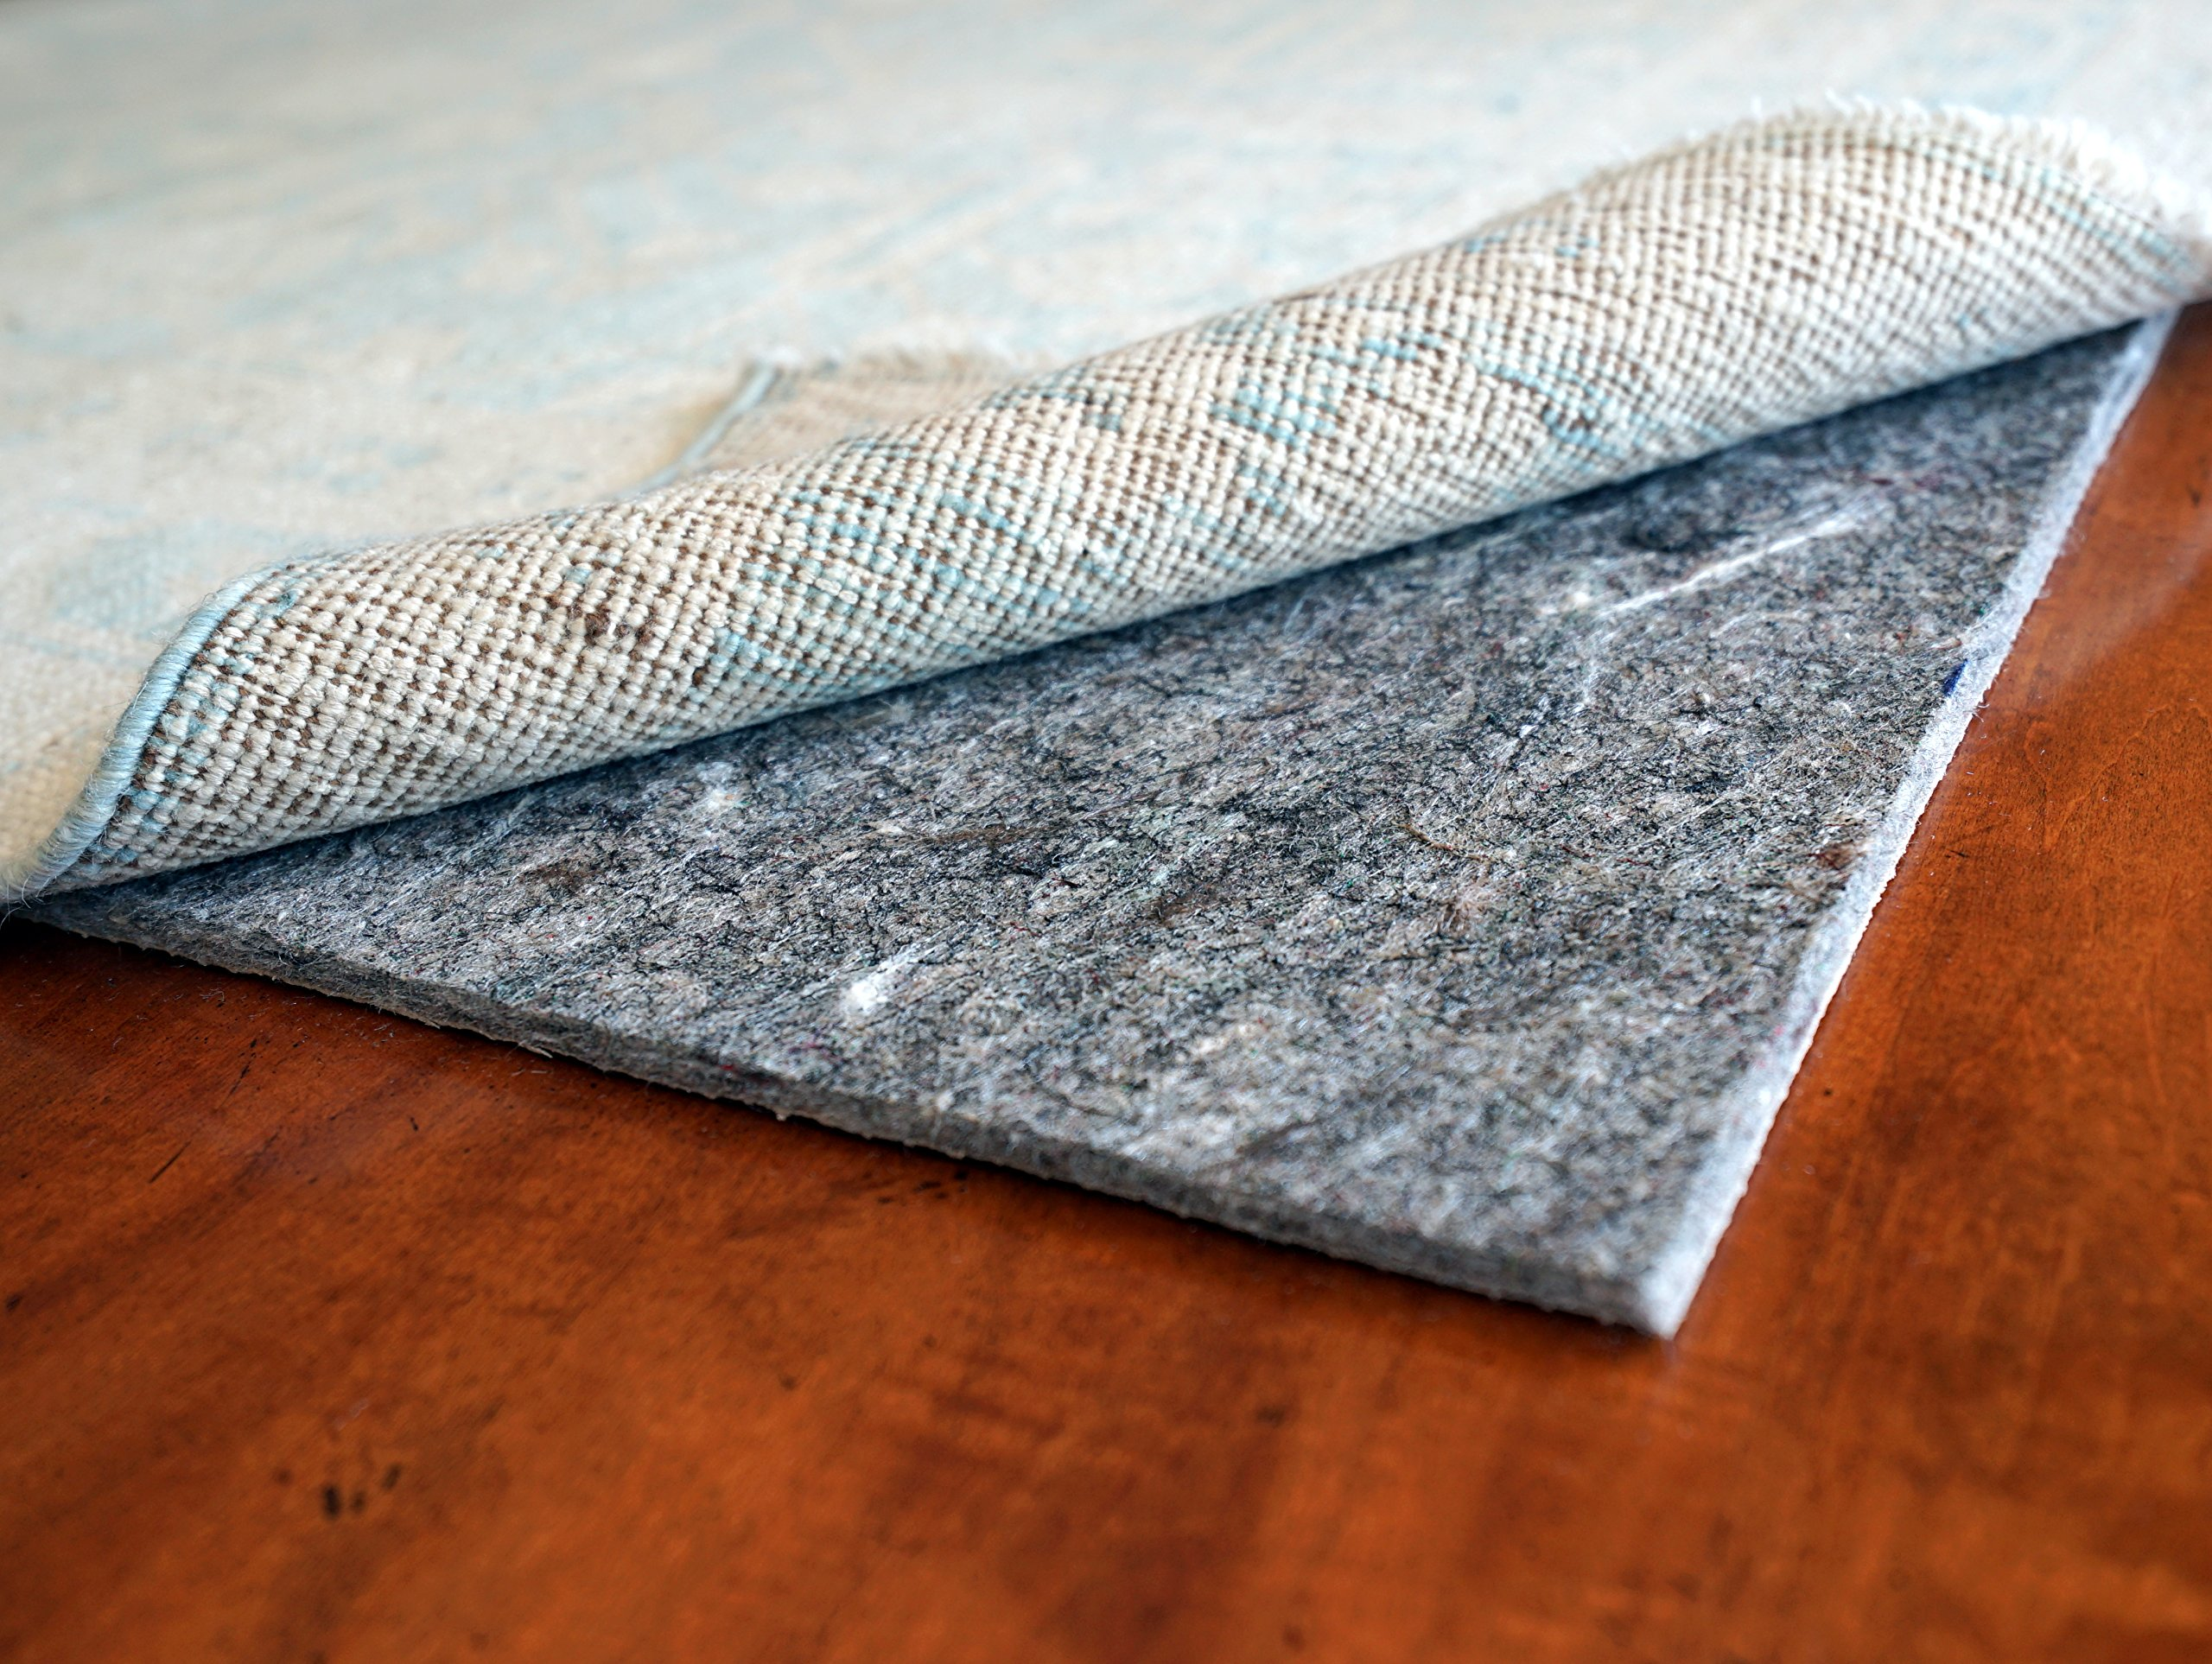 Contour Lock 1/8'' Rubber & Felt by Rug Pad USA, Quality Low Profile Rug Mat, Locking Non-Skid Rug Pad Grips and Protects- Made in USA- 20 Year Warranty (11x16) by Rug Pad USA